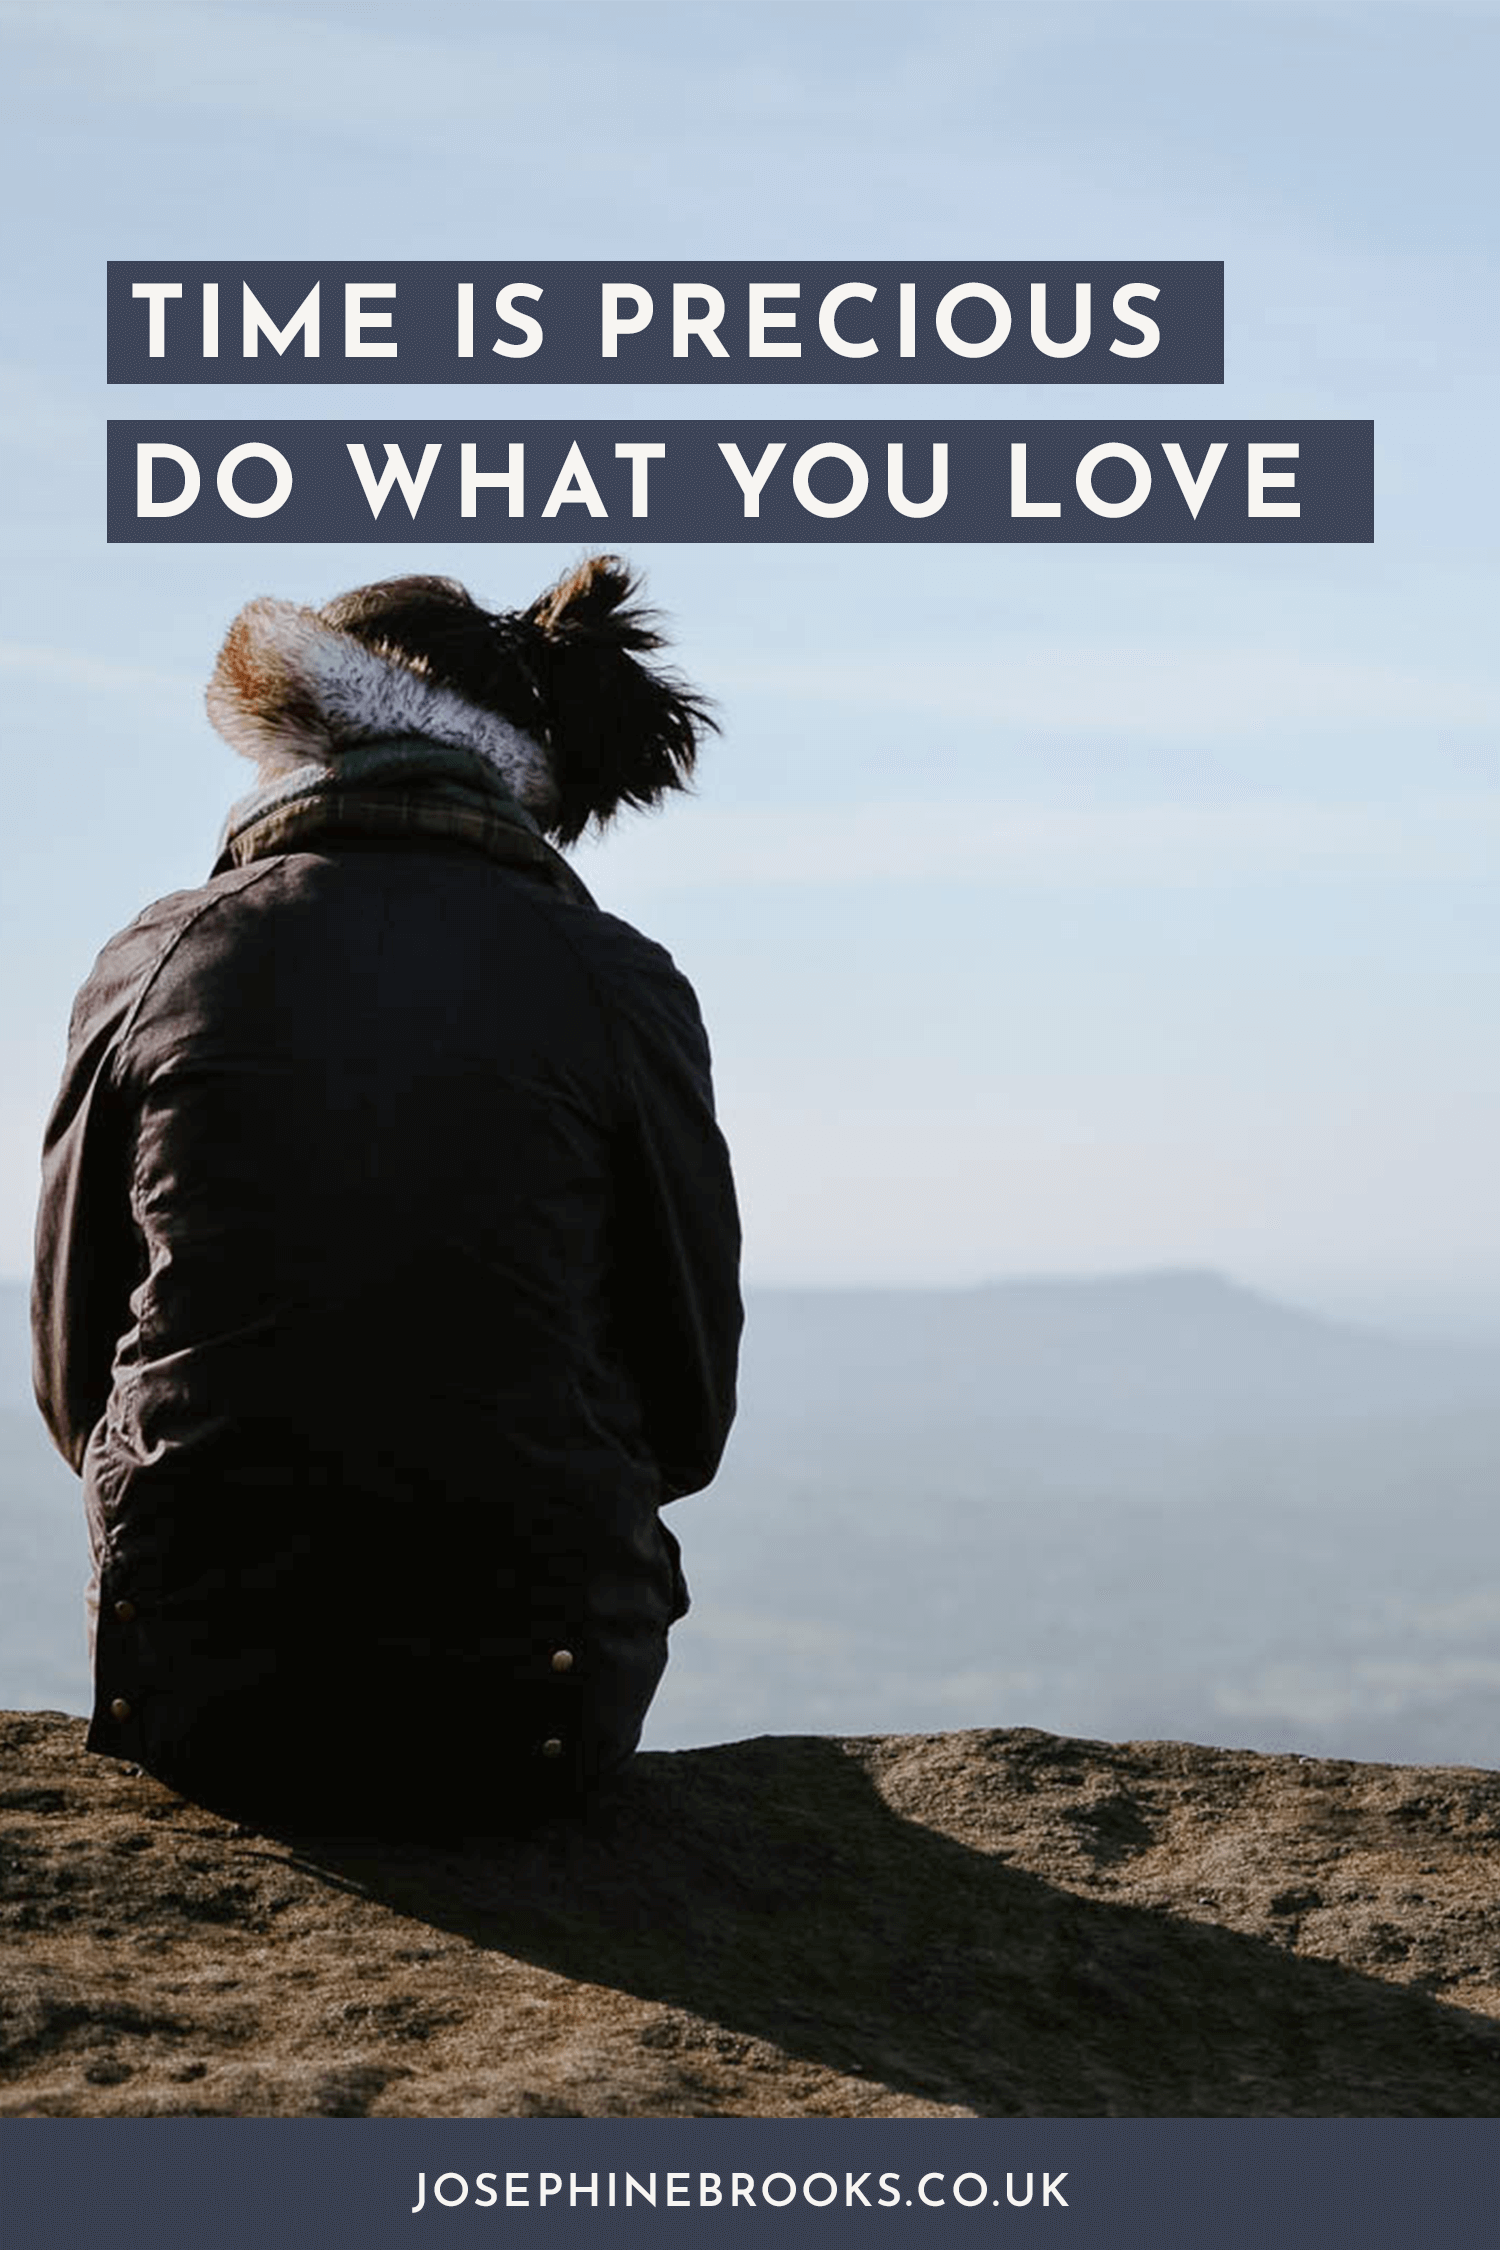 Time is Precious, Do what you love, Do what you love - time is precious - tips on business planning and doing what you love, building a creative business and measuring your success | Josephine Brooks